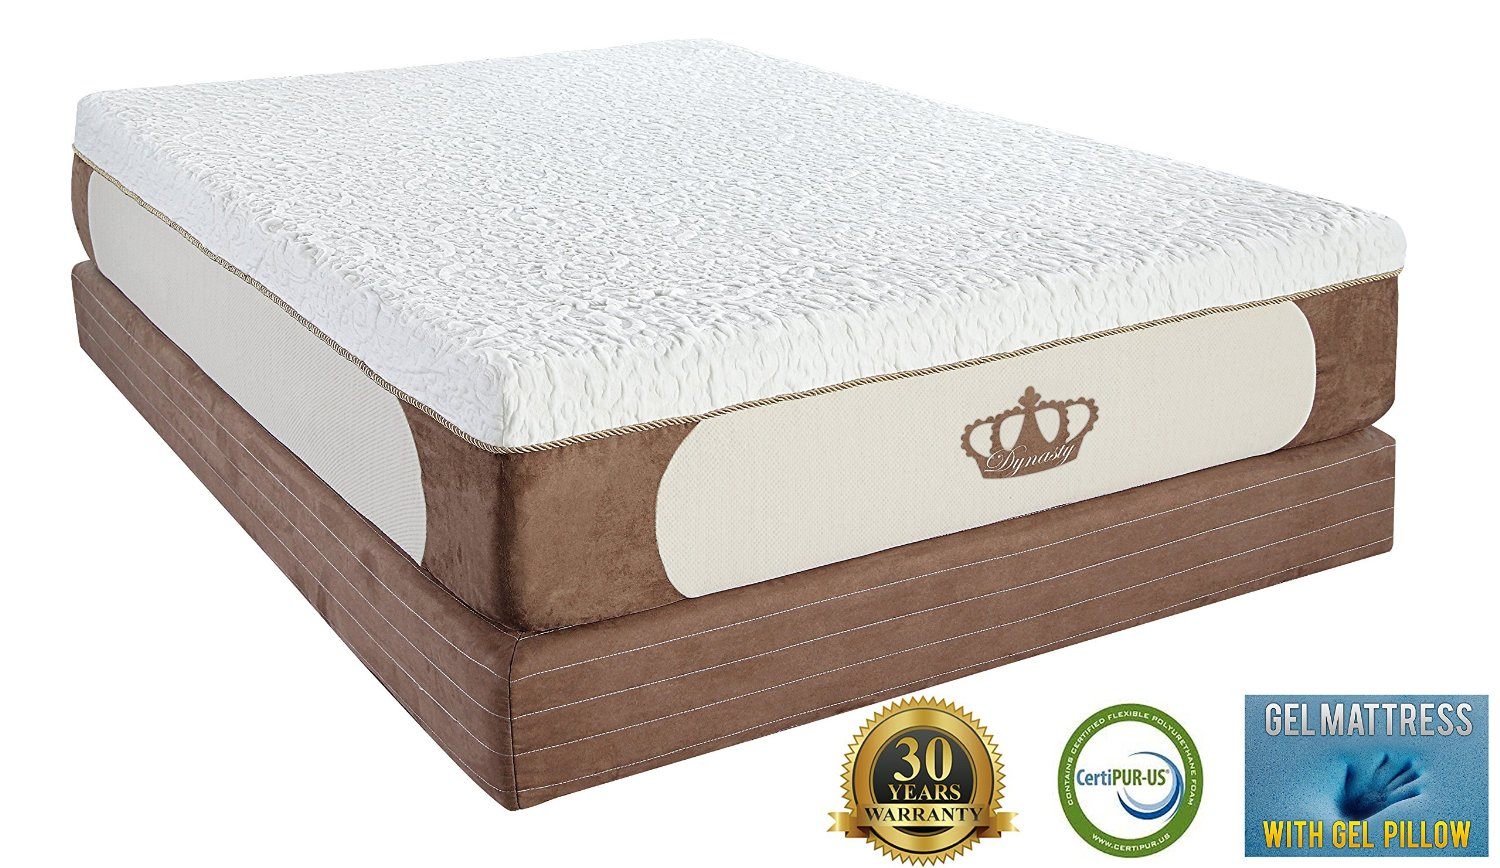 Gel Memory Foam Mattress Gel Memory Foam Mattress Adjustable Bed Mattresses Best Gel Memory